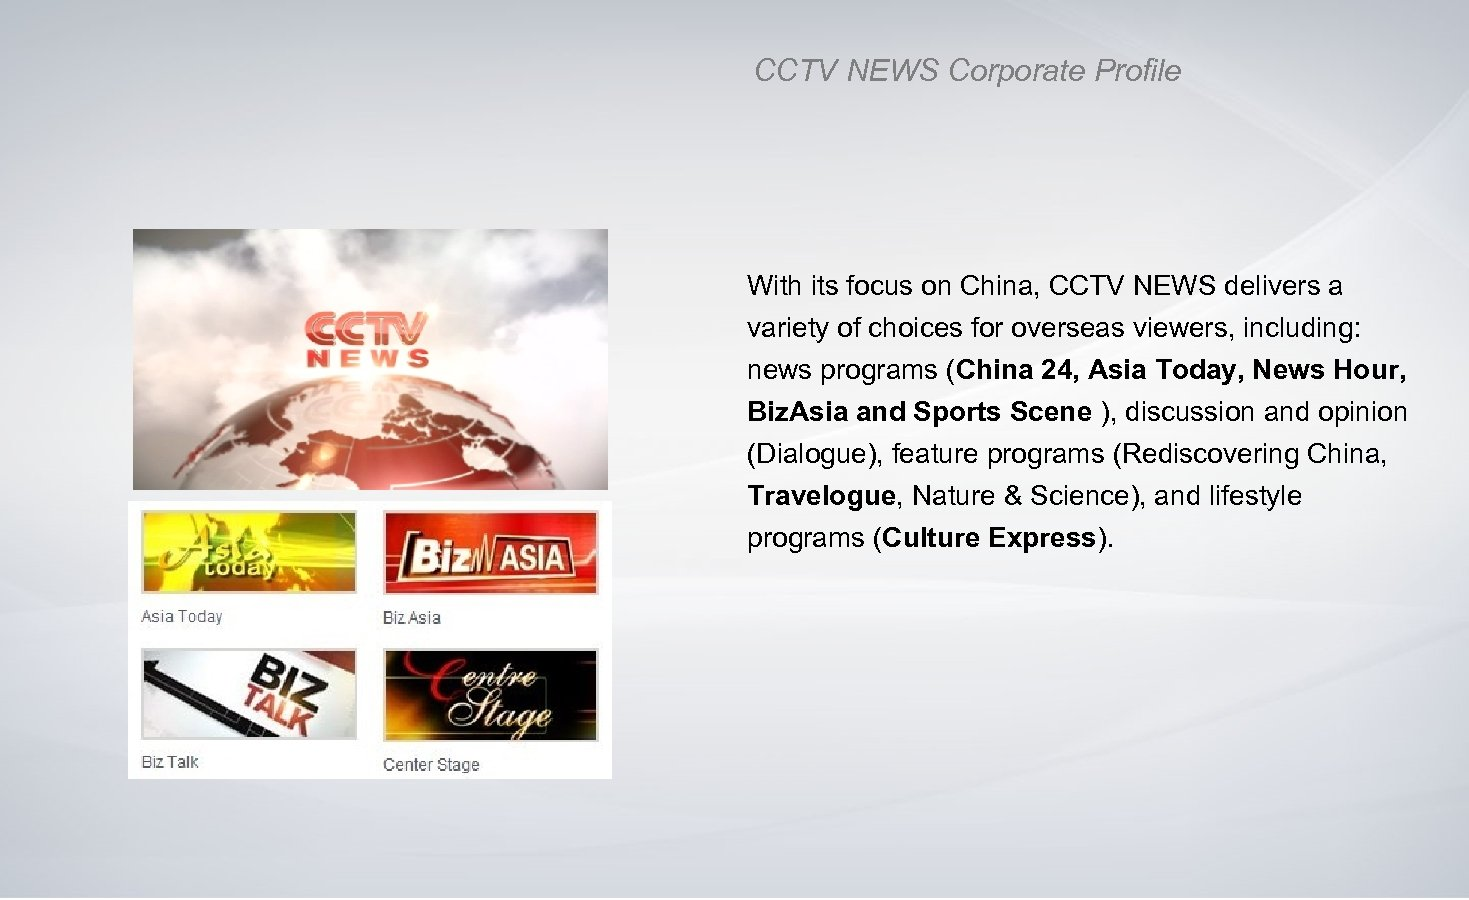 CCTV NEWS Corporate Profile With its focus on China, CCTV NEWS delivers a variety